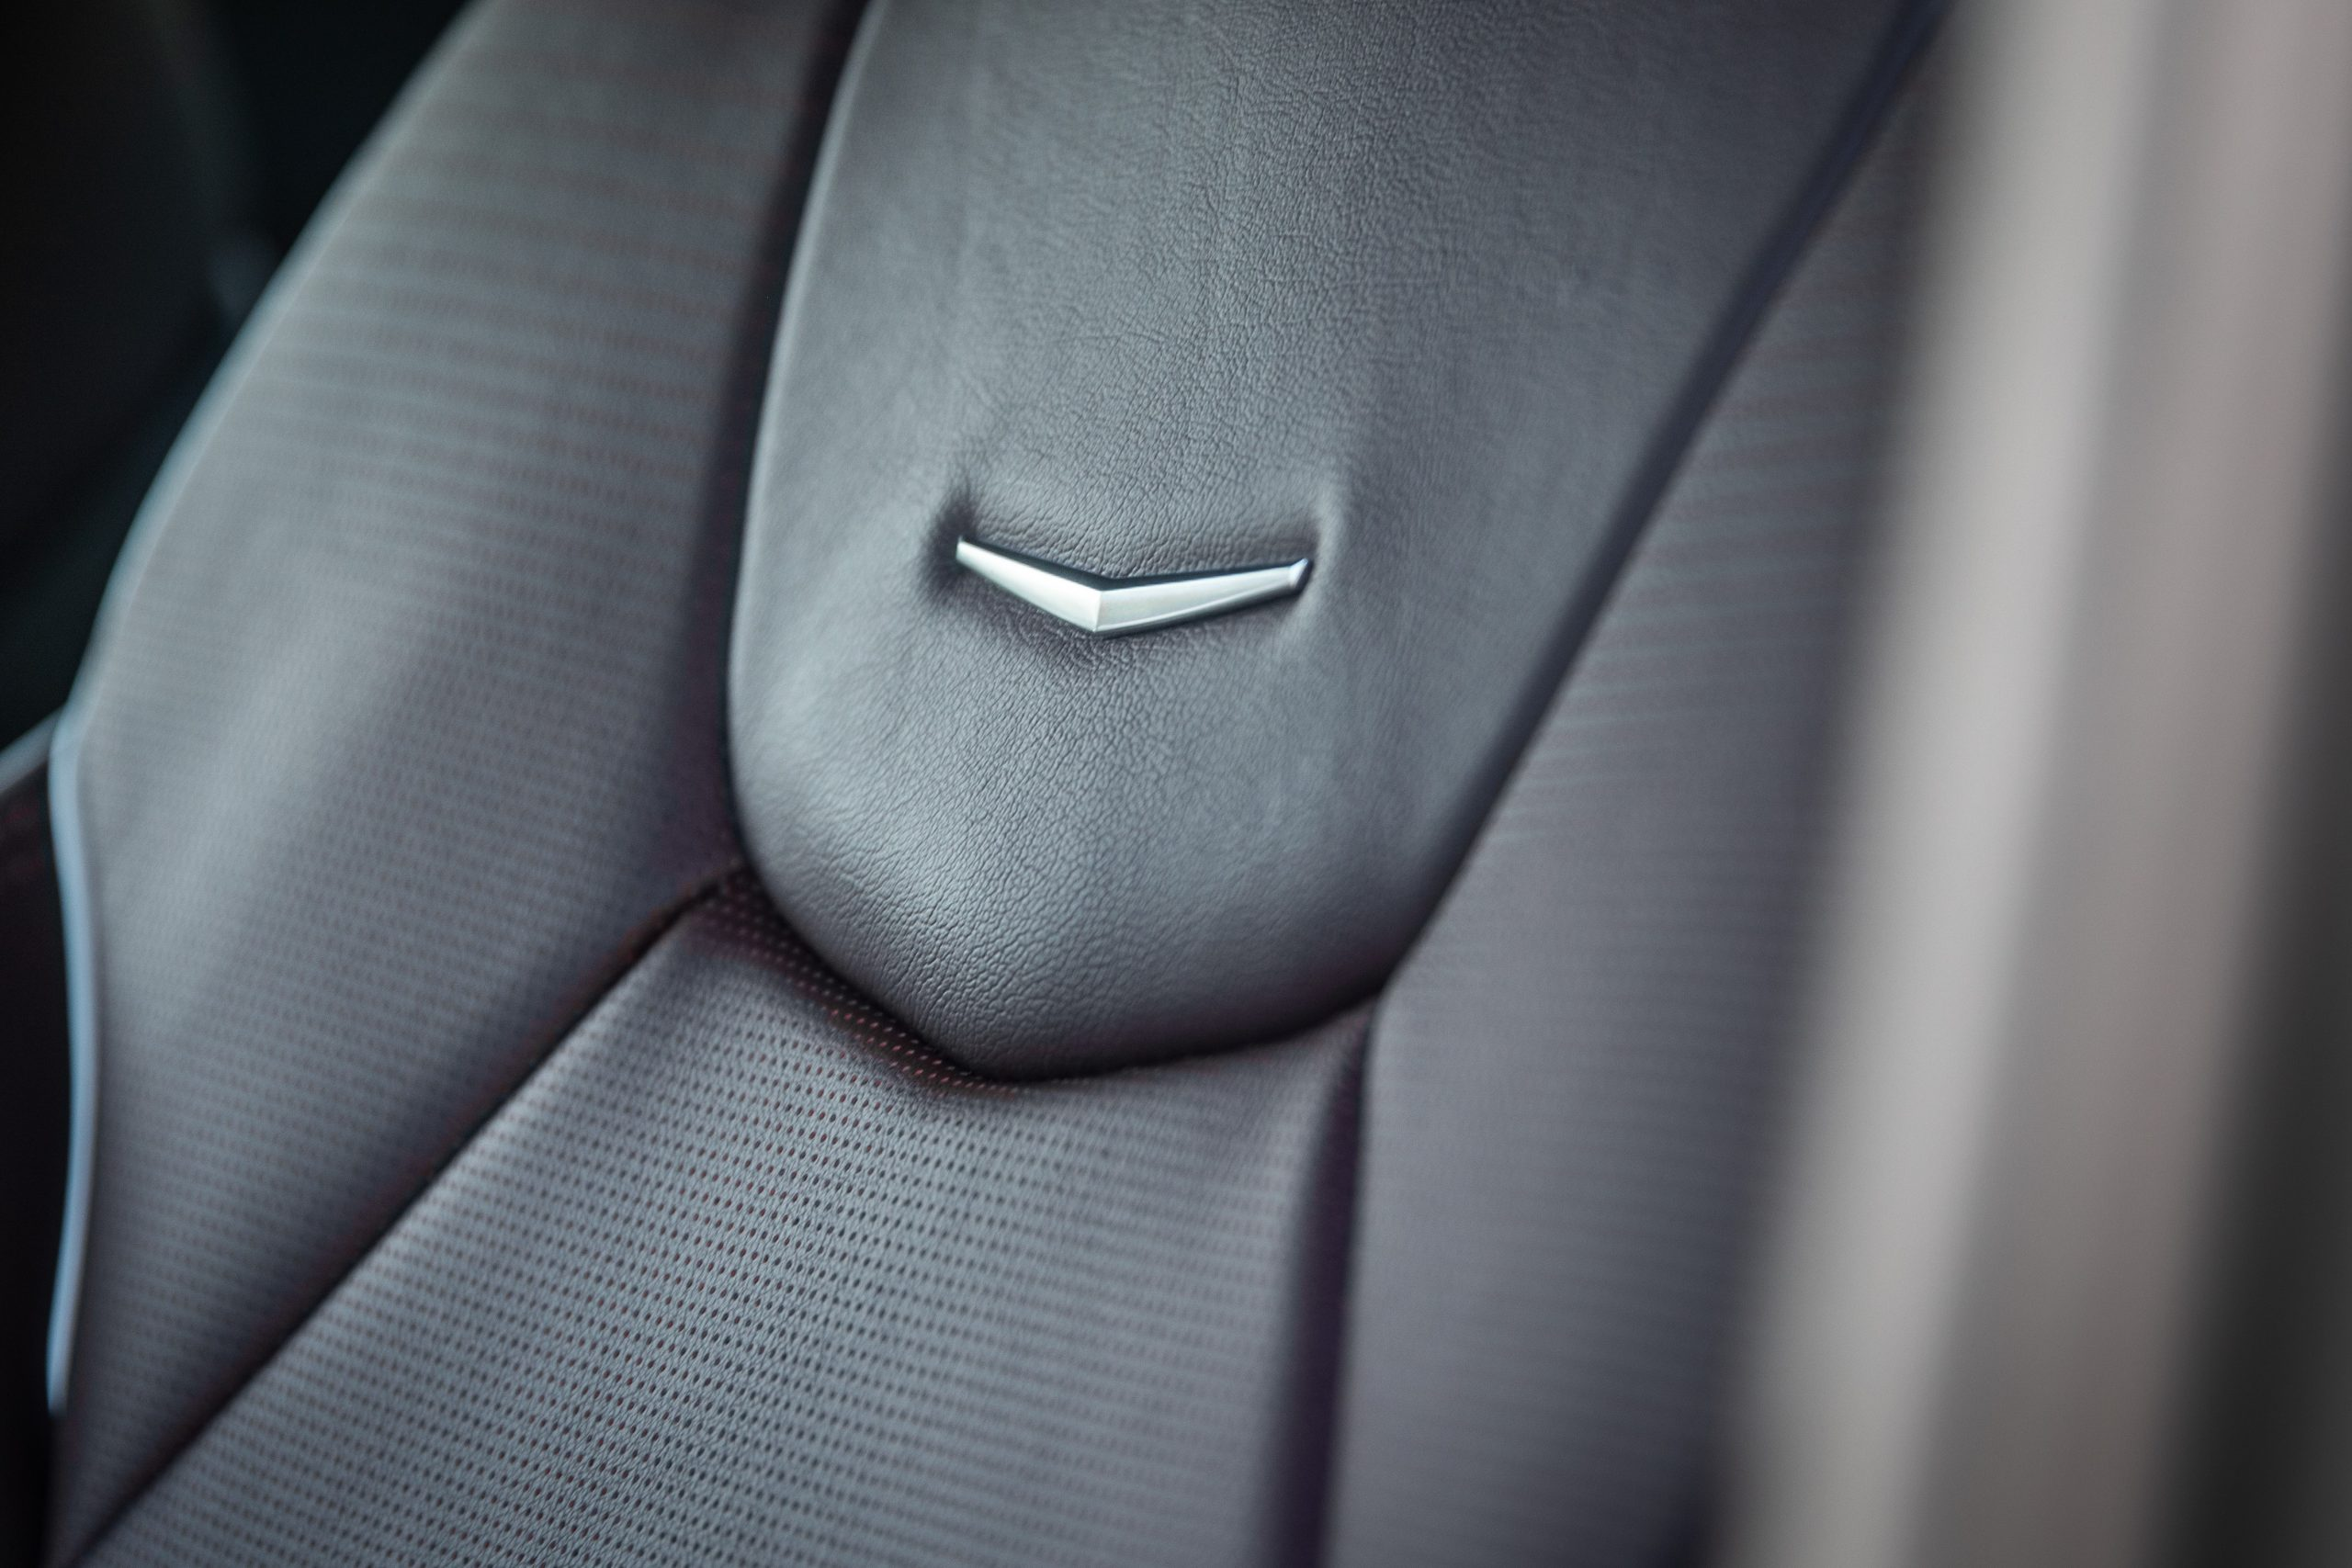 2020 Cadillac CT4-V 24 headrest detail